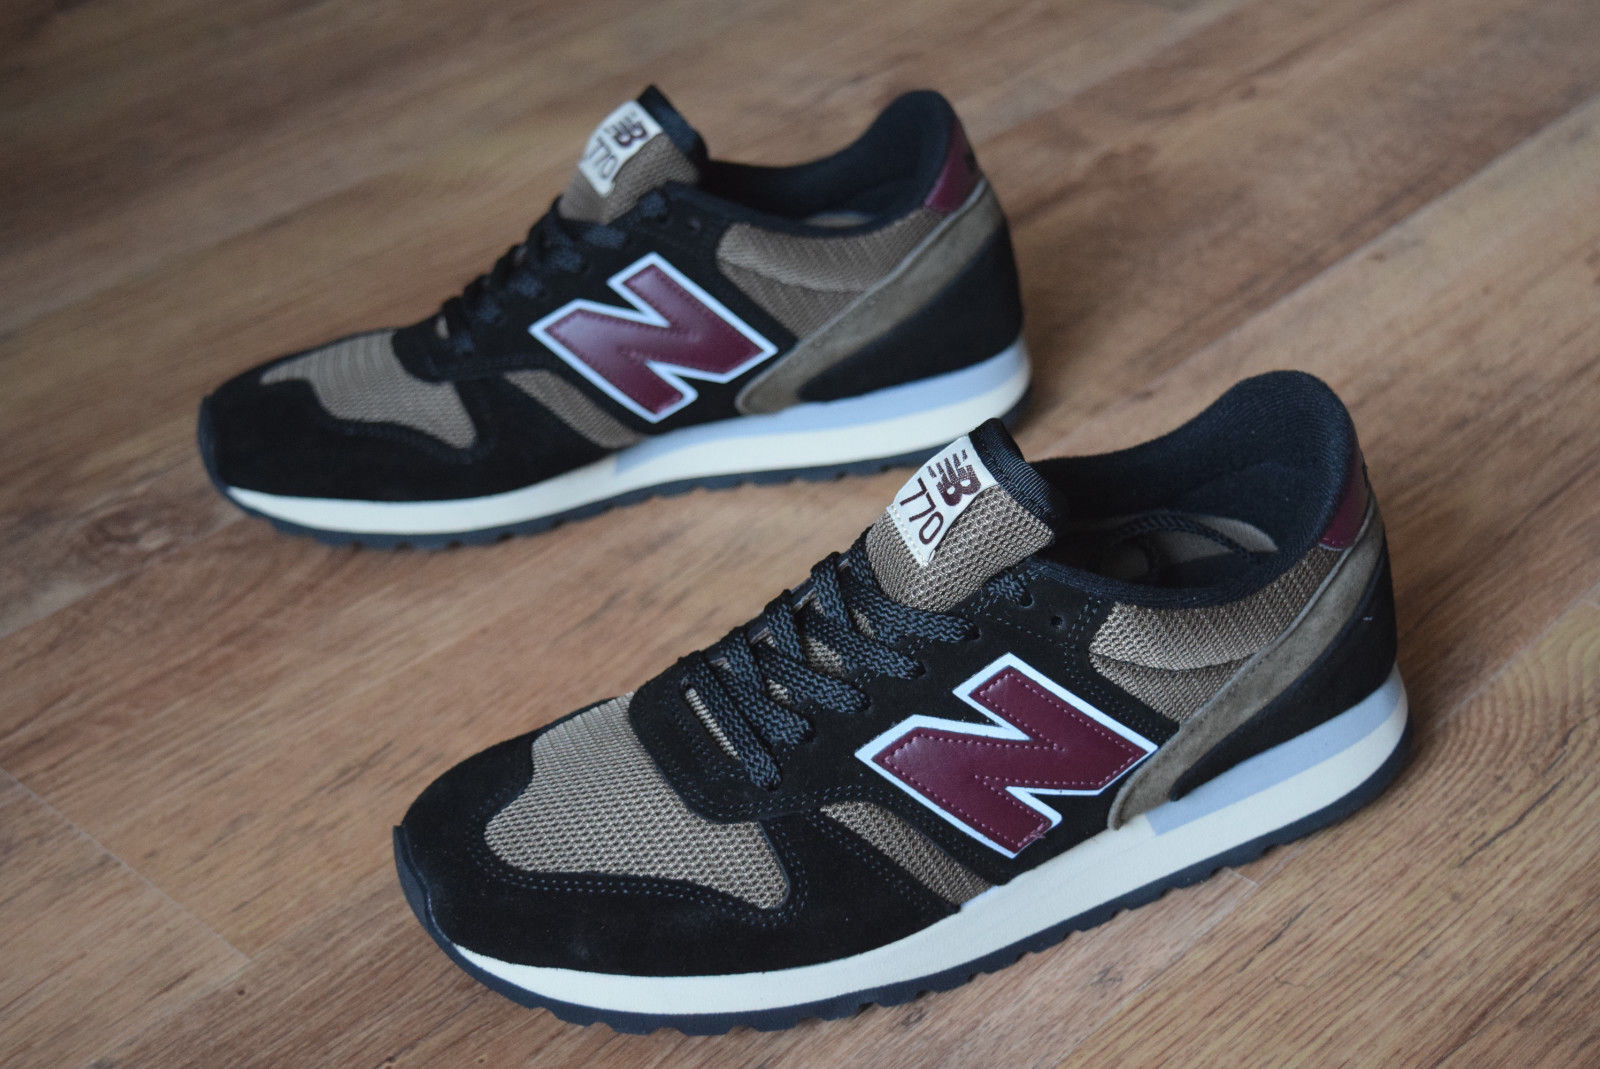 New Balance M 770 Kgr 40,5 41,5 42,5 44 44,5 45 Made In Angleterre Royaume-Uni